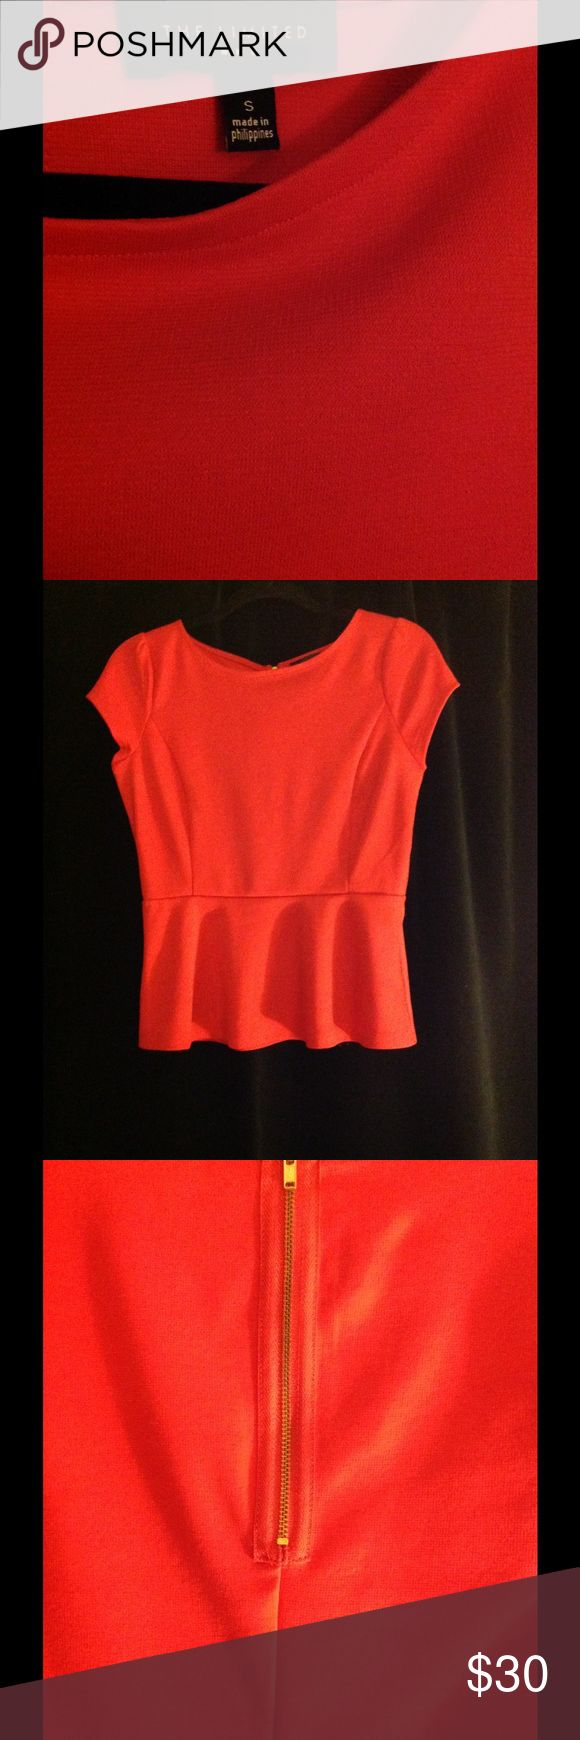 Red peplum top from The Limited Adorable red peplum top from The Limited. It's great for work or going out! Only wore once or twice so it's in new condition. The Limited Tops Blouses